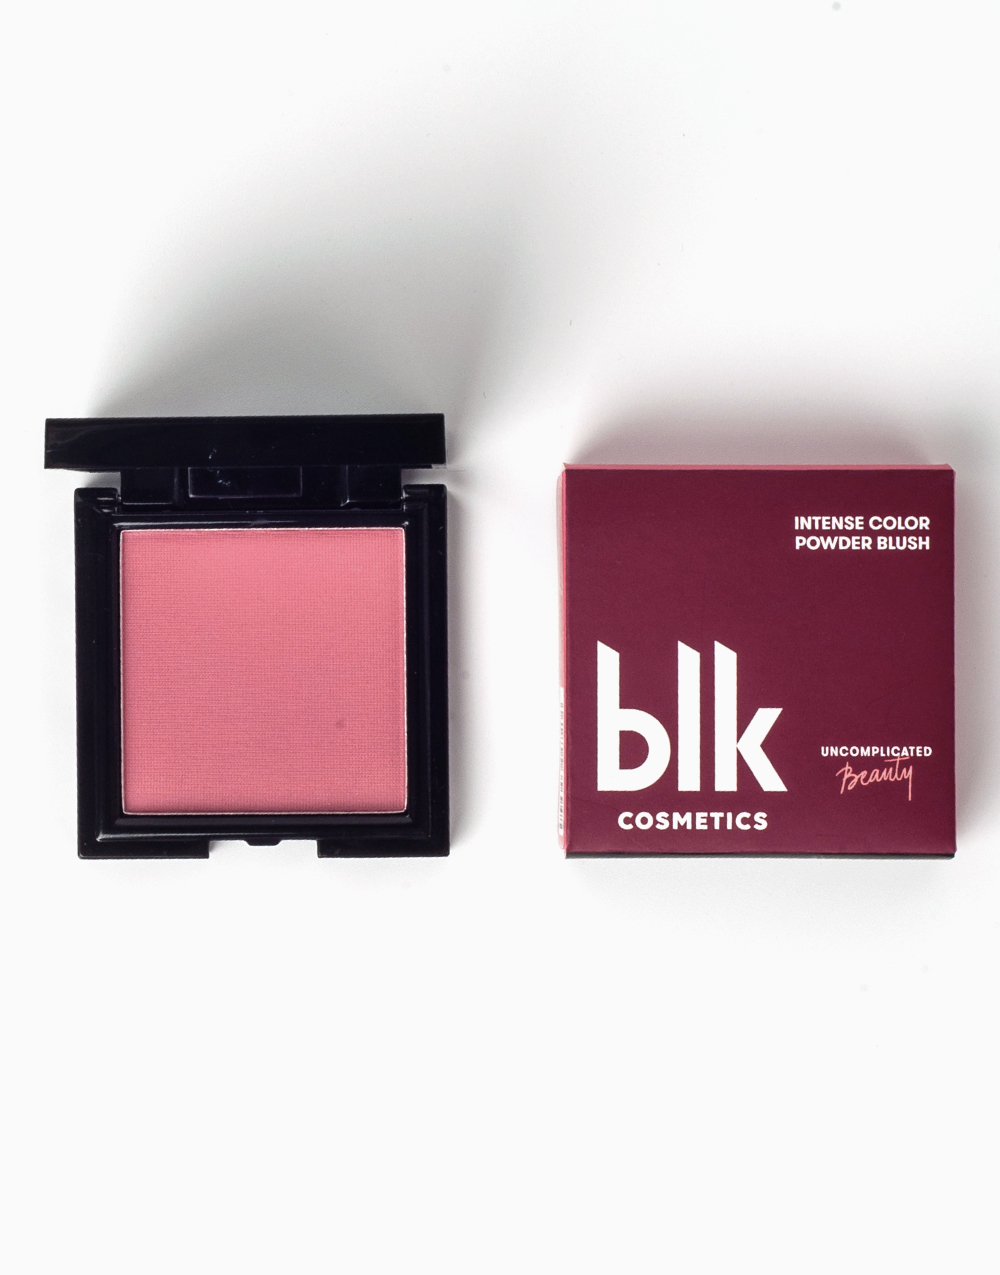 Intense Color Powder Blush in Pinched (Nearest Expiry: December 01, 2021) by BLK Cosmetics